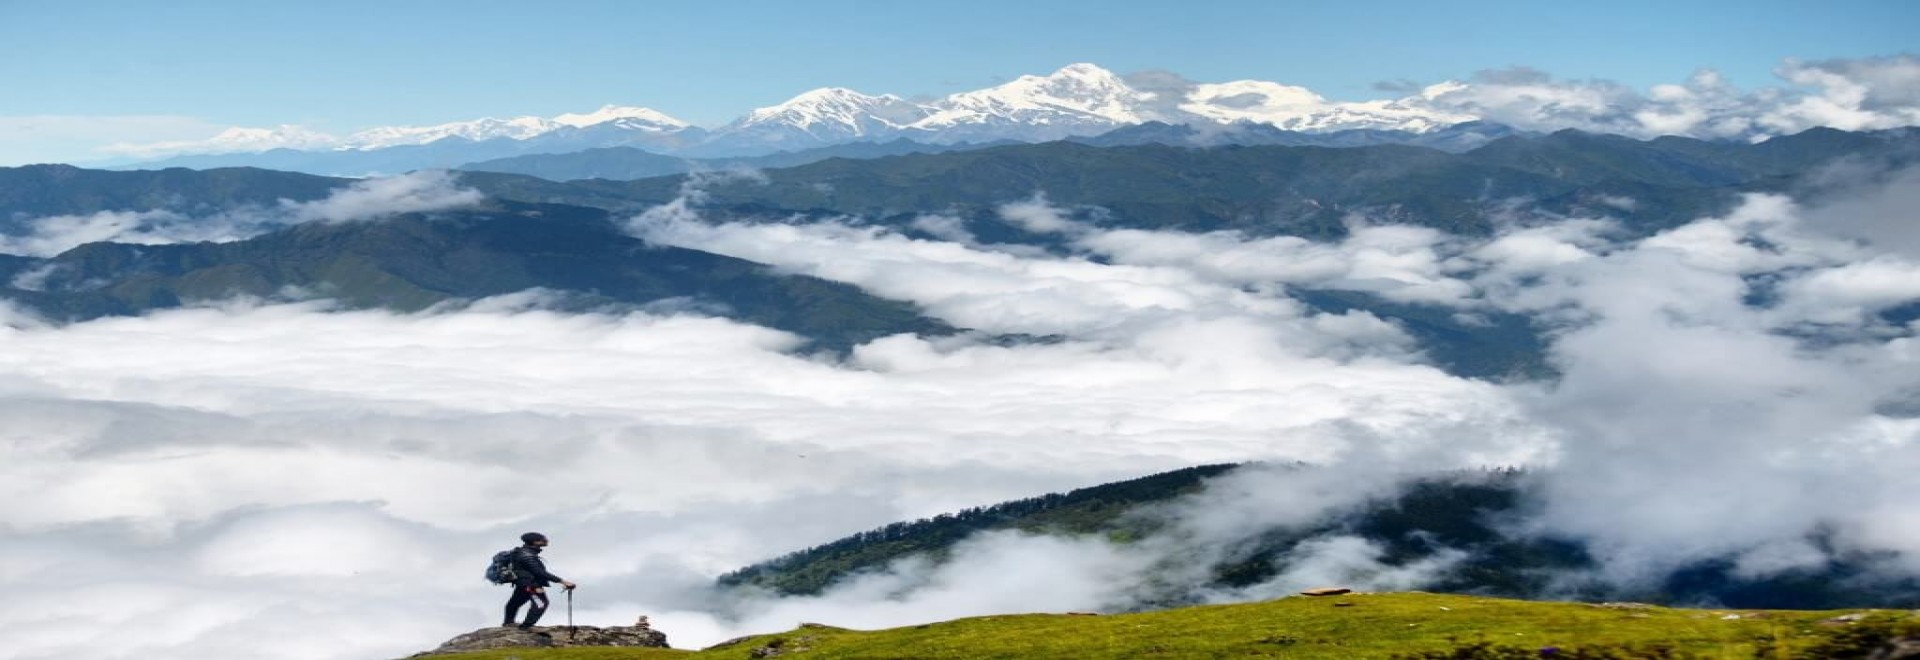 REASONS TO GO FOR LANGTANG VALLEY TREK